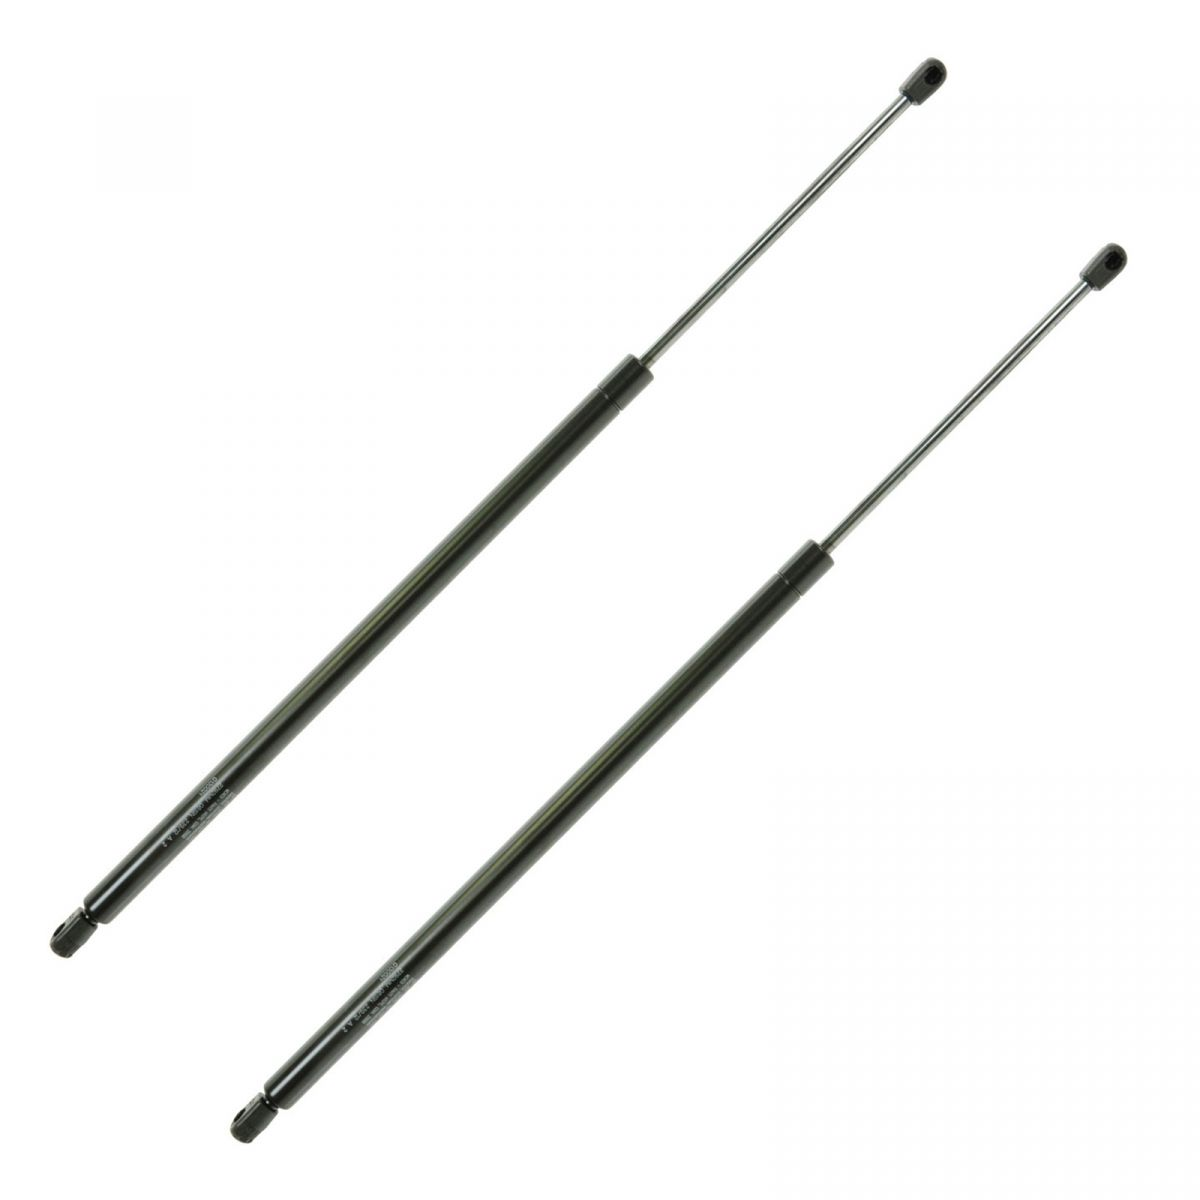 Tailgate Lift Supports Shock Struts Pair Set Kit for Buick